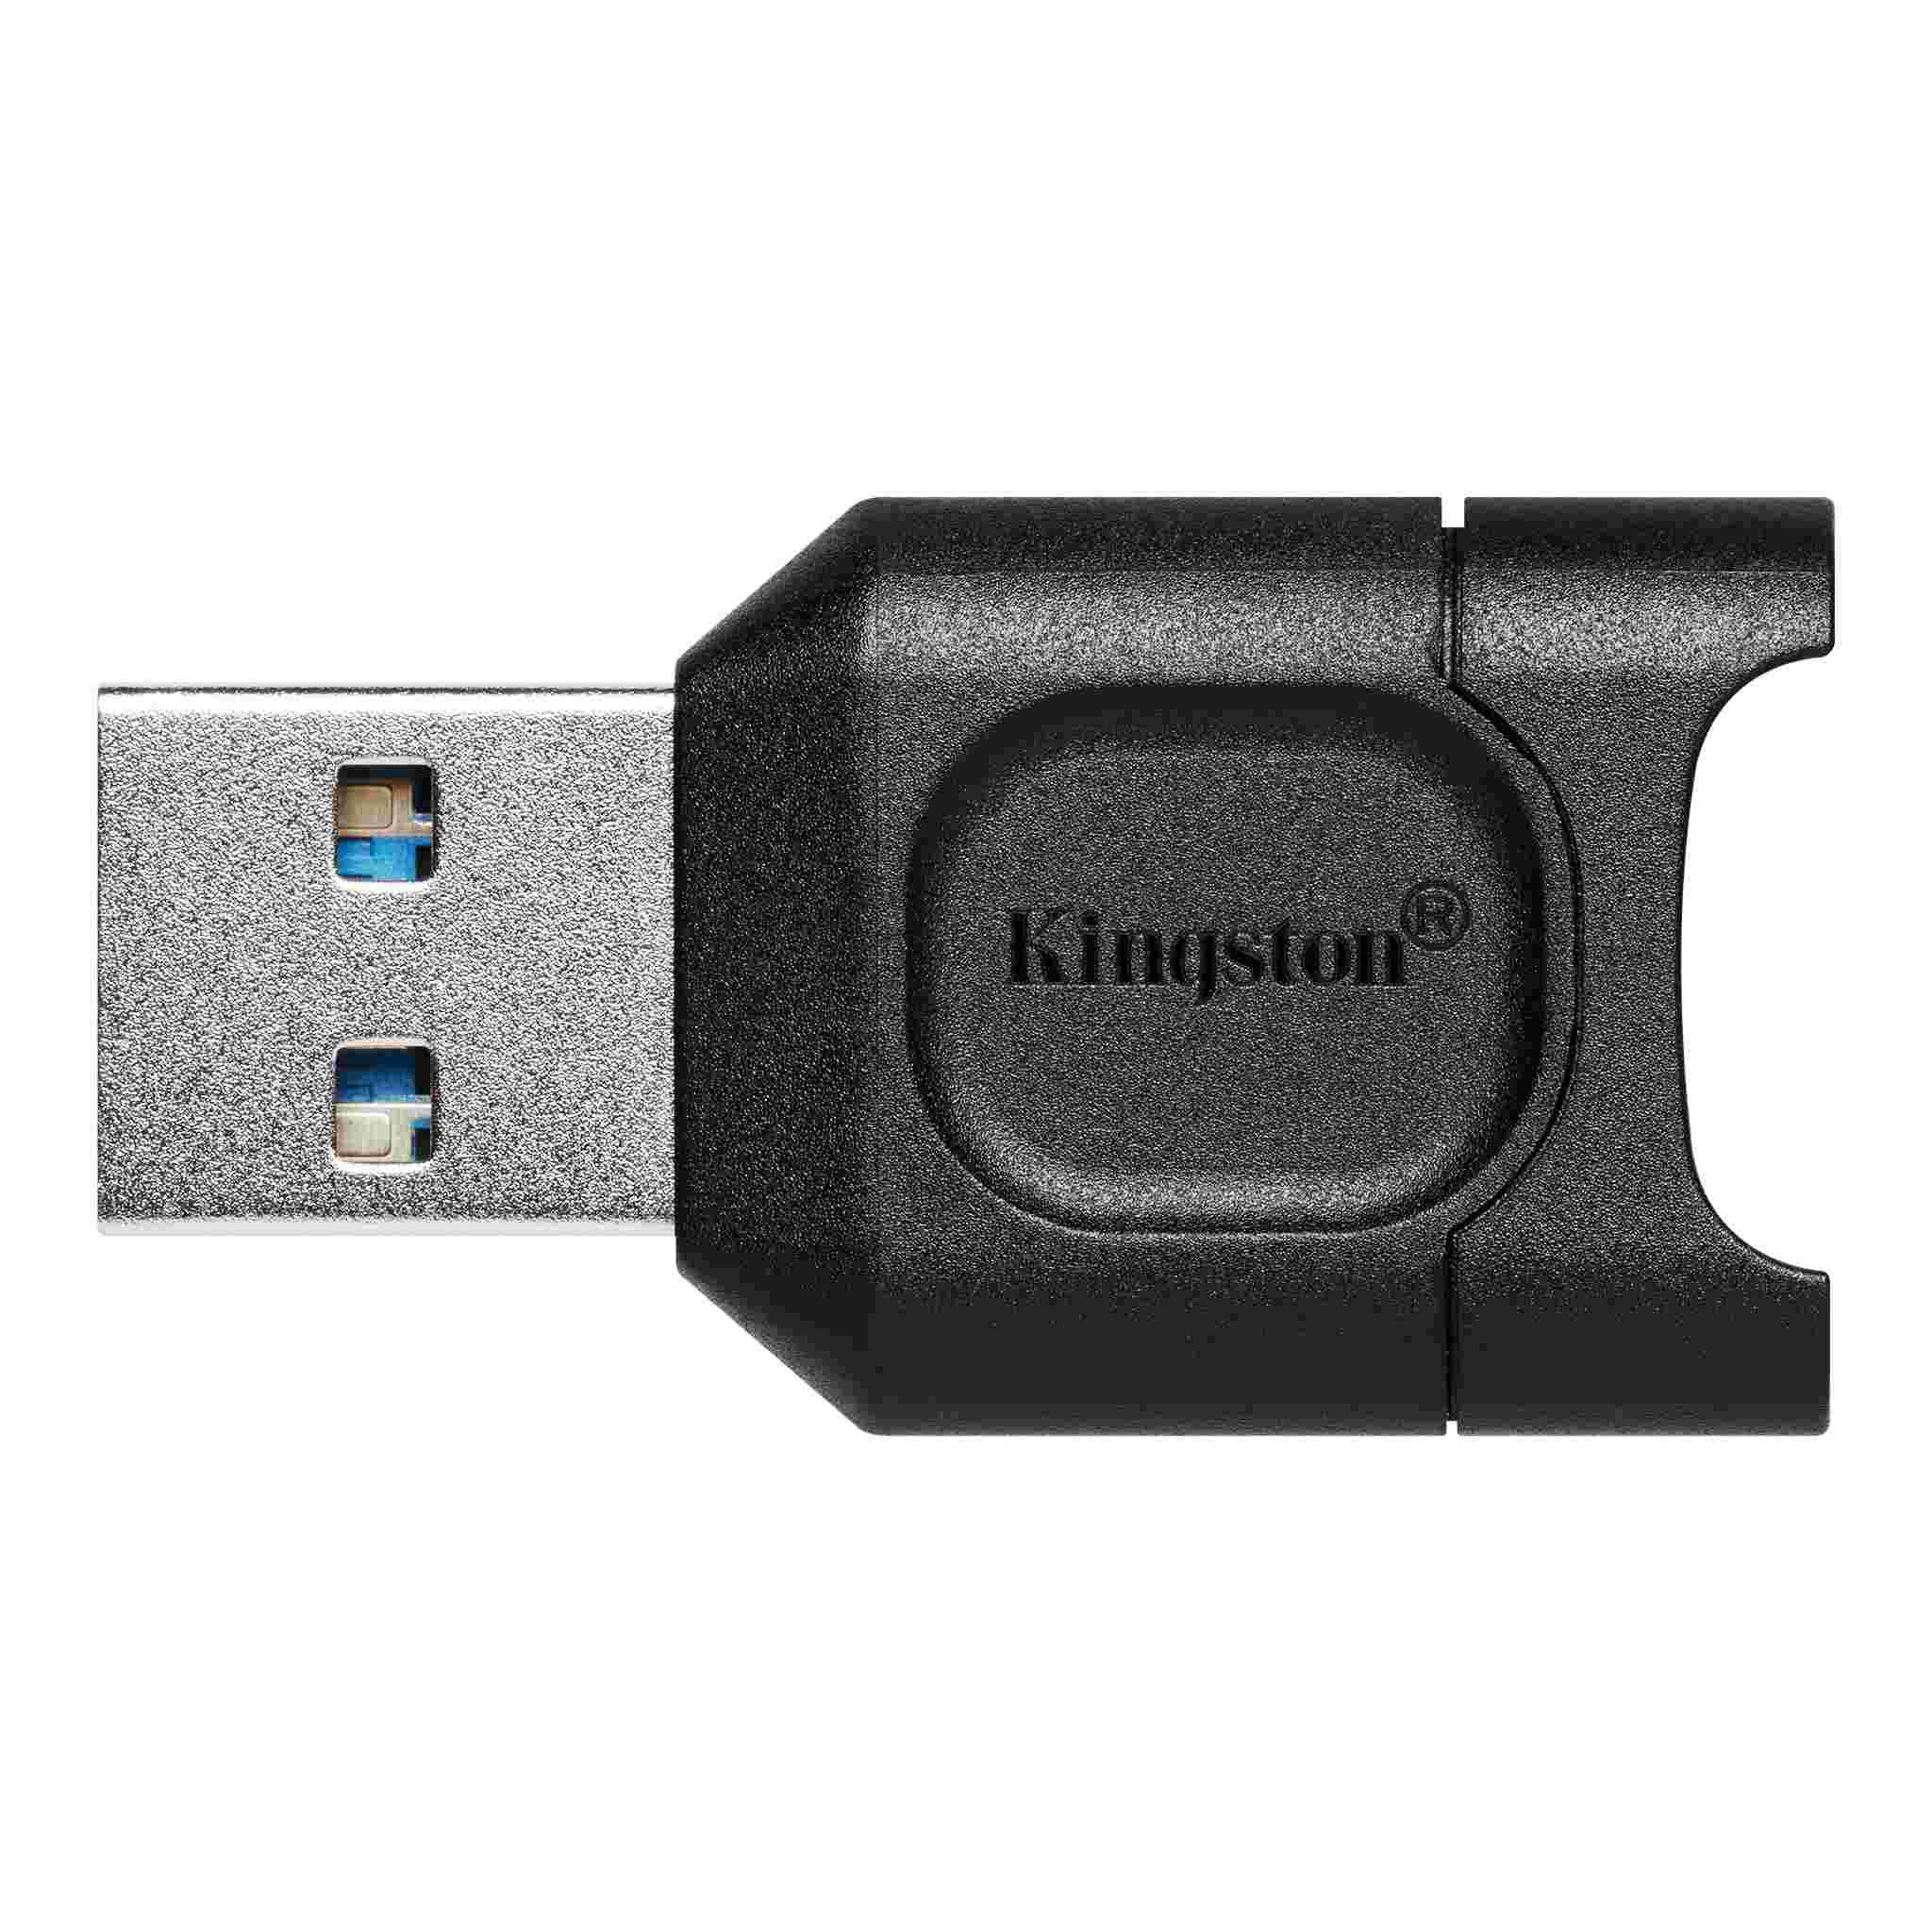 100MBs Works with Kingston Kingston 128GB Gionee S11 lite MicroSDXC Canvas Select Plus Card Verified by SanFlash.